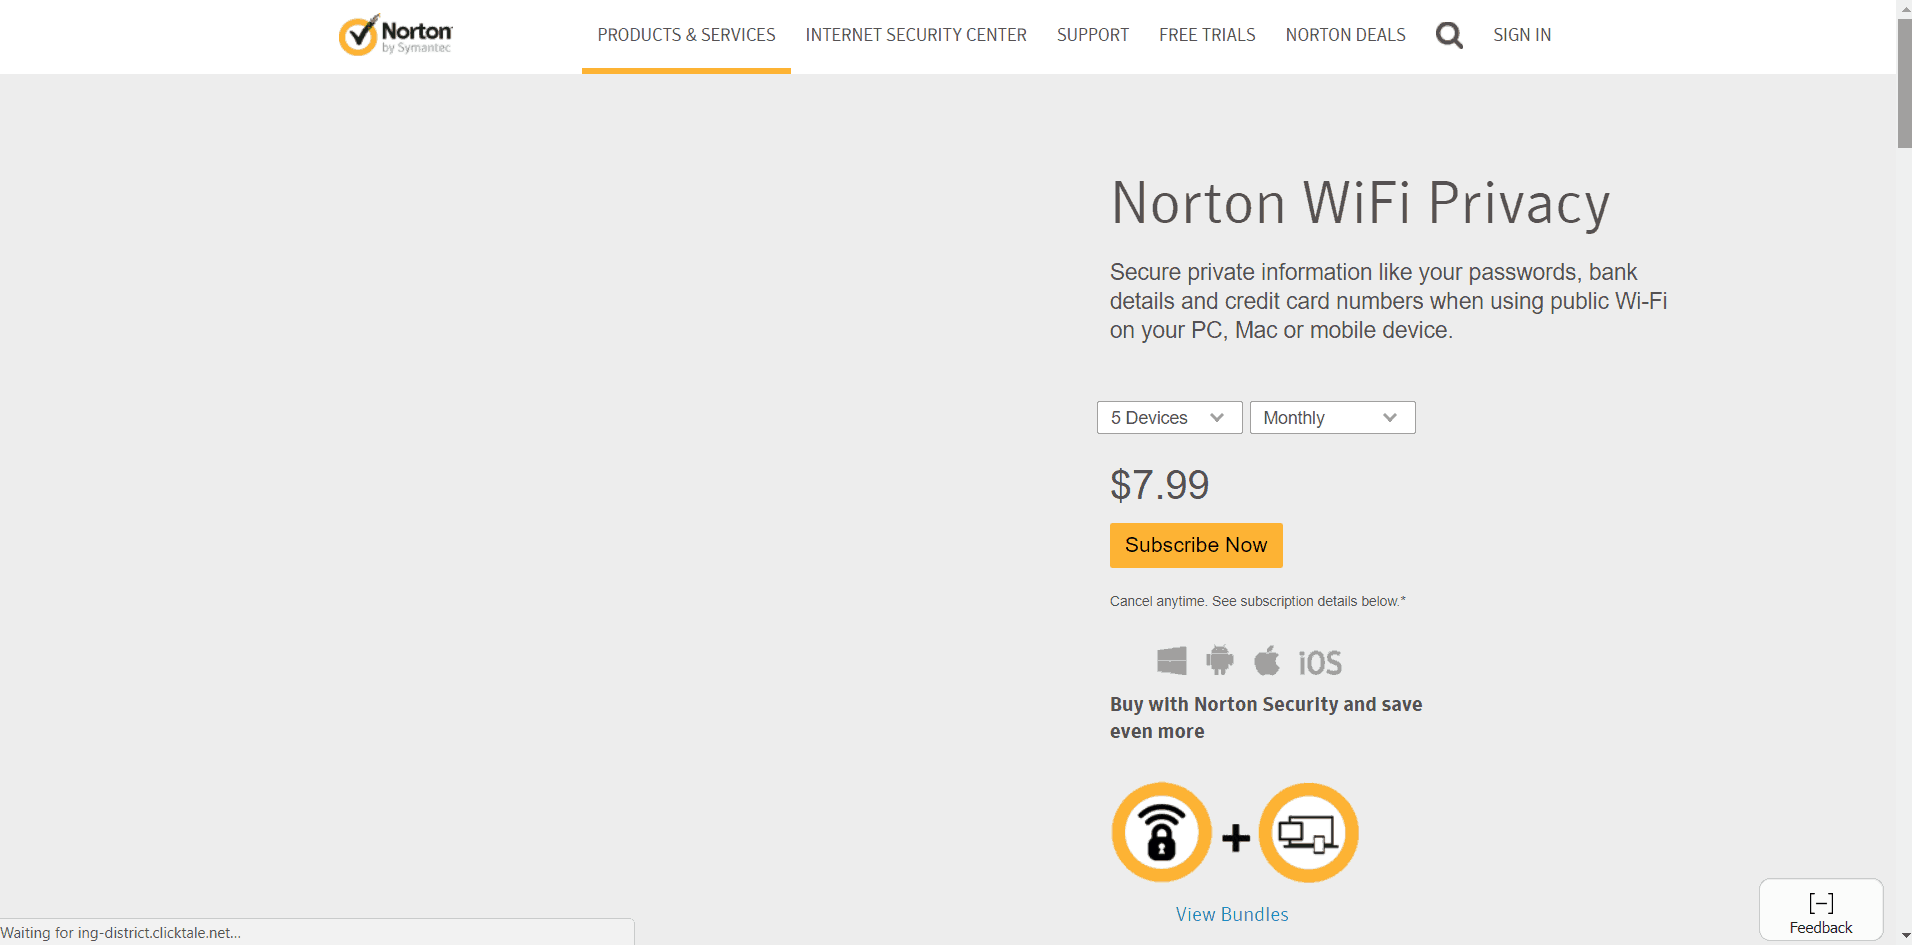 Norton WiFi Privacy Review - Does Norton Offer a Reliable VPN?